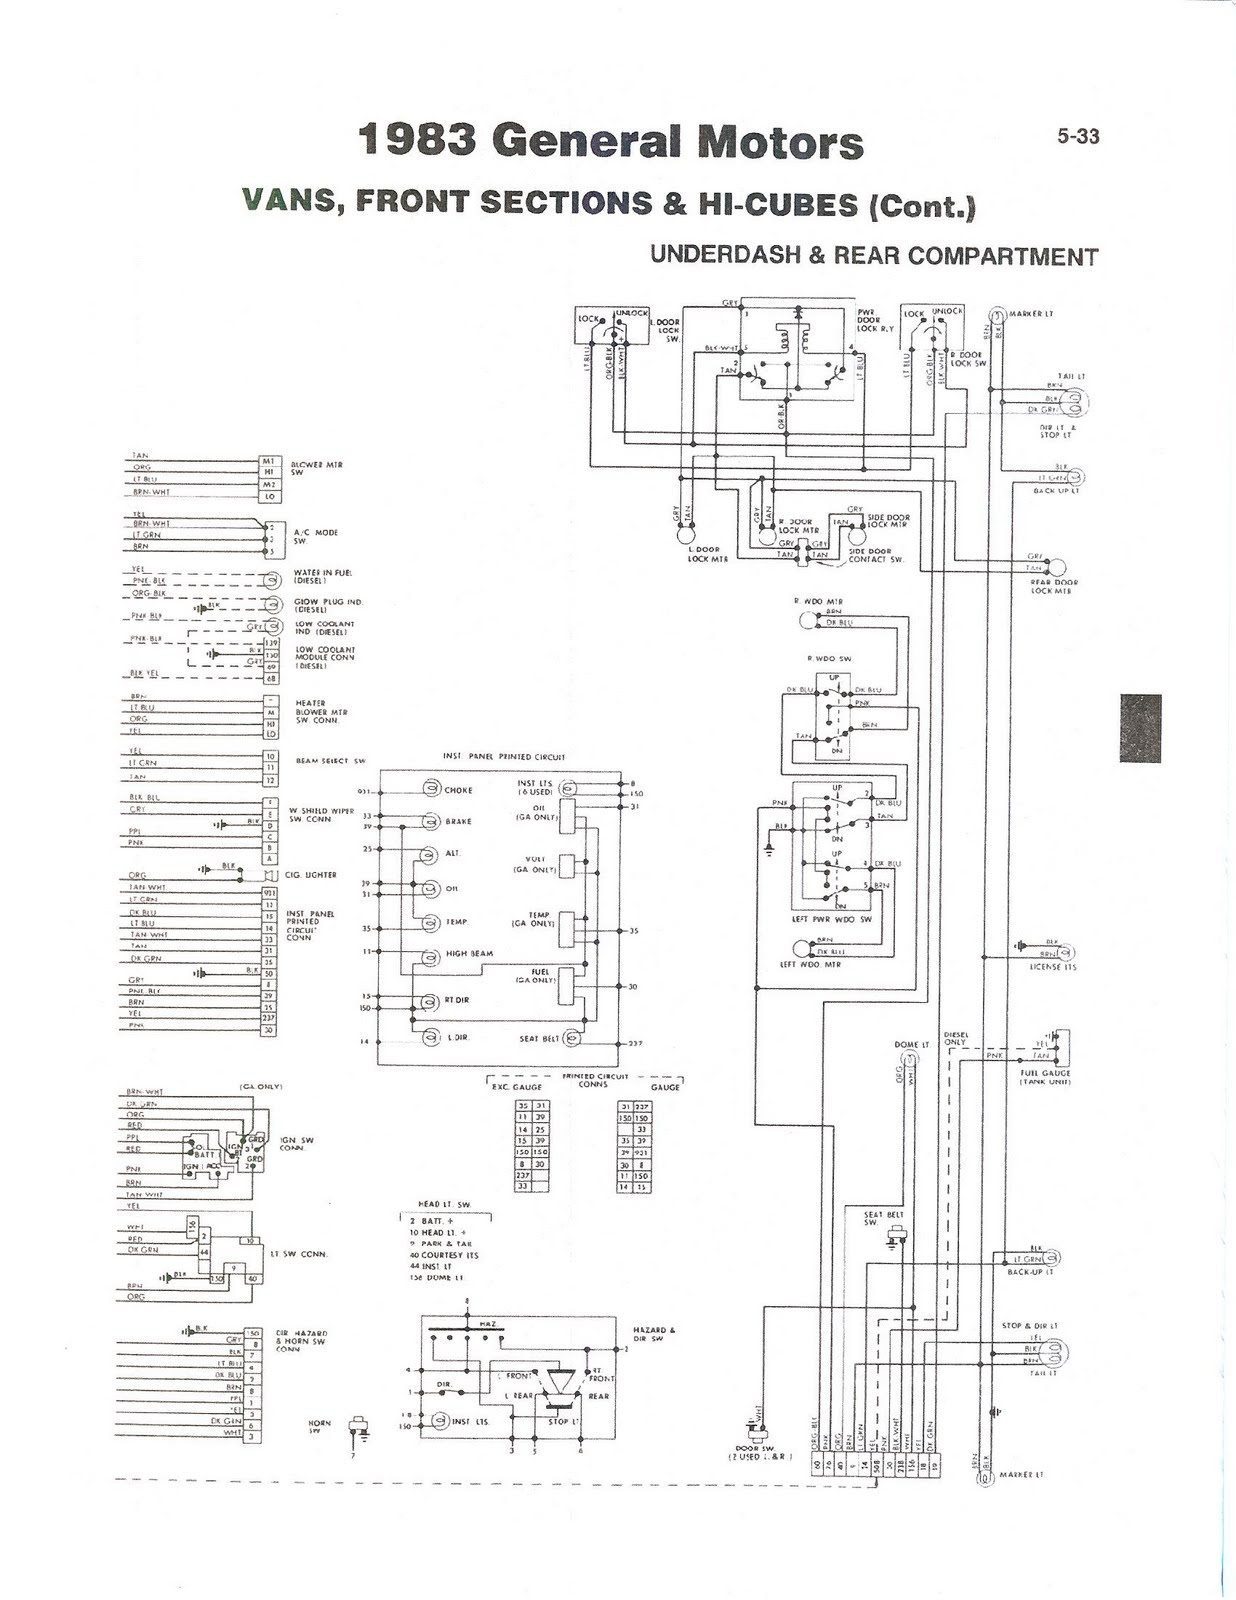 1983 Fleetwood Pace Arrow Owners Manuals Wireing Diagram 83 GM Van. Wireing Diagram 83 GM Van Front Section Hicube. GM. Basic GM Wiring Diagram At Scoala.co